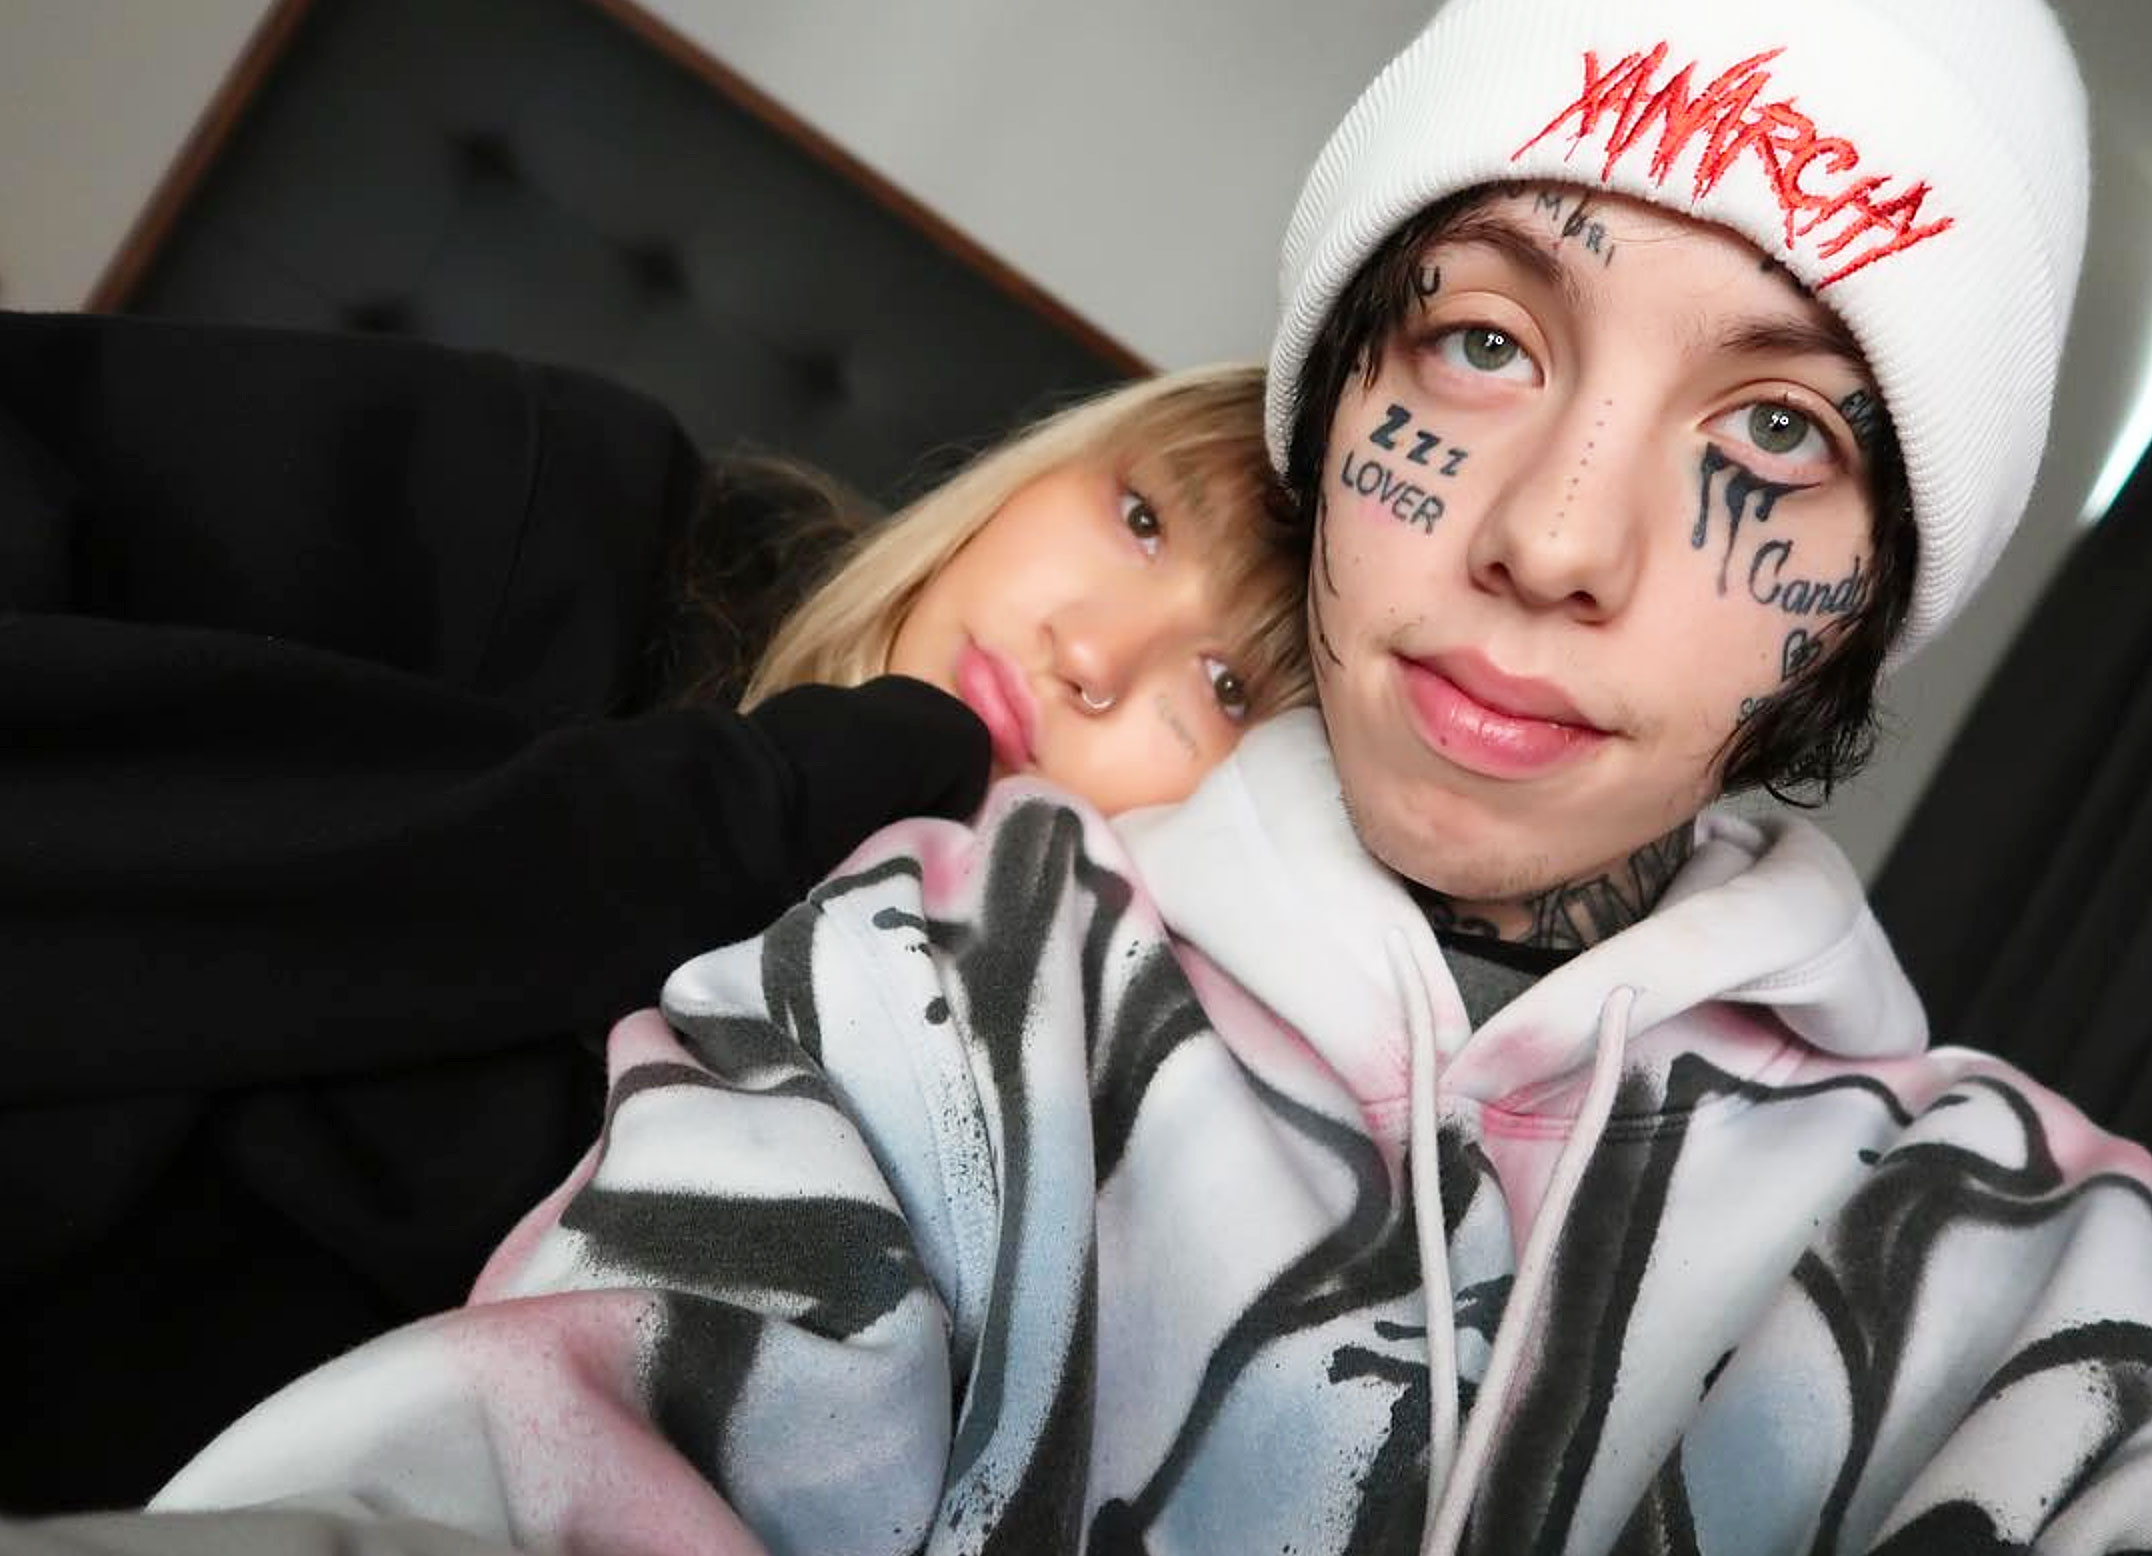 34a99c564e85f Lil Xan Addresses Speculation That Fiancee Annie Smith Faked Her Pregnancy  and Miscarriage: 'I'm 50/50'